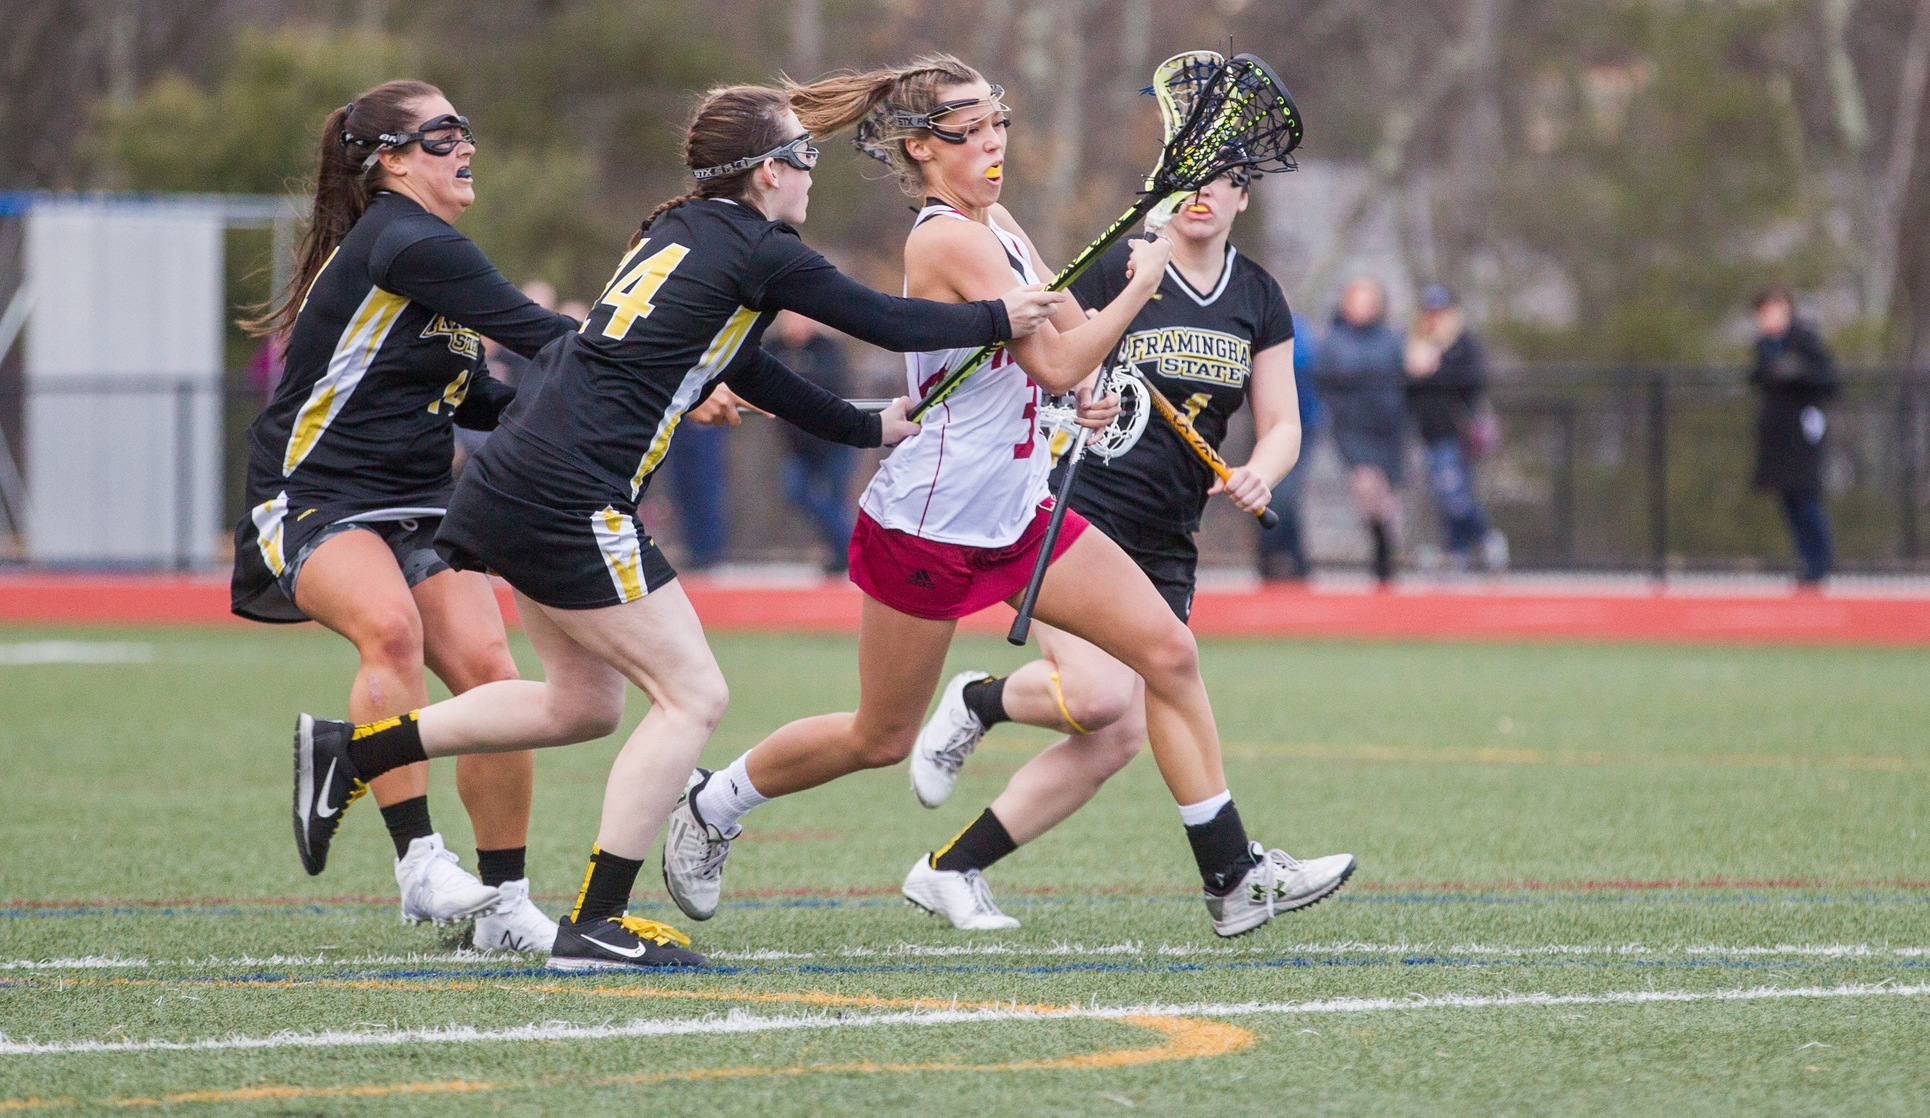 Anselmo Nets 100th Goal as Women's Lacrosse Downs Emmanuel